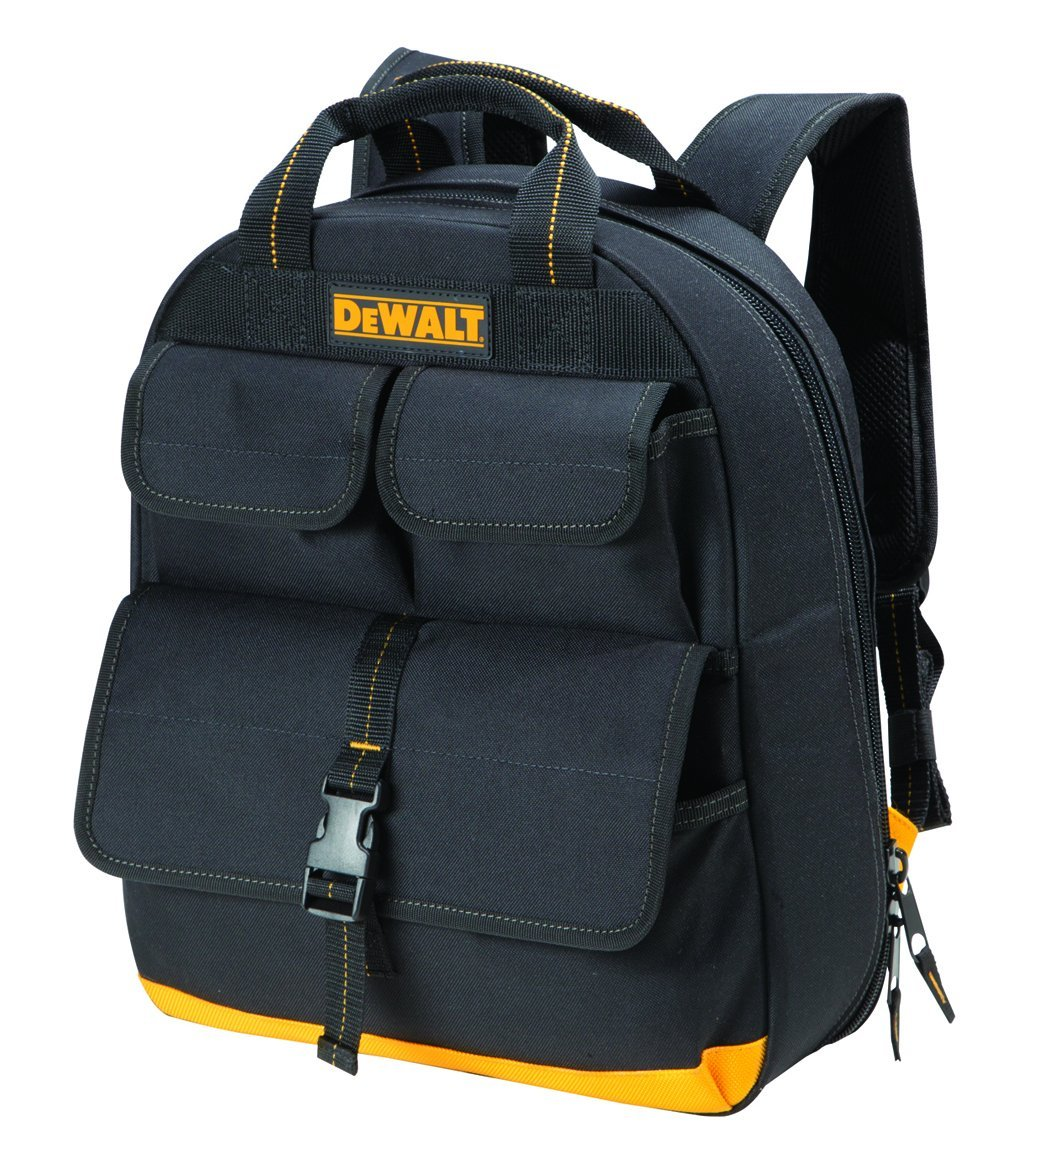 best tool backpack The Techie Choice: DeWalt DGC530 USB Charging Tool Back Pack With 23 Pockets.